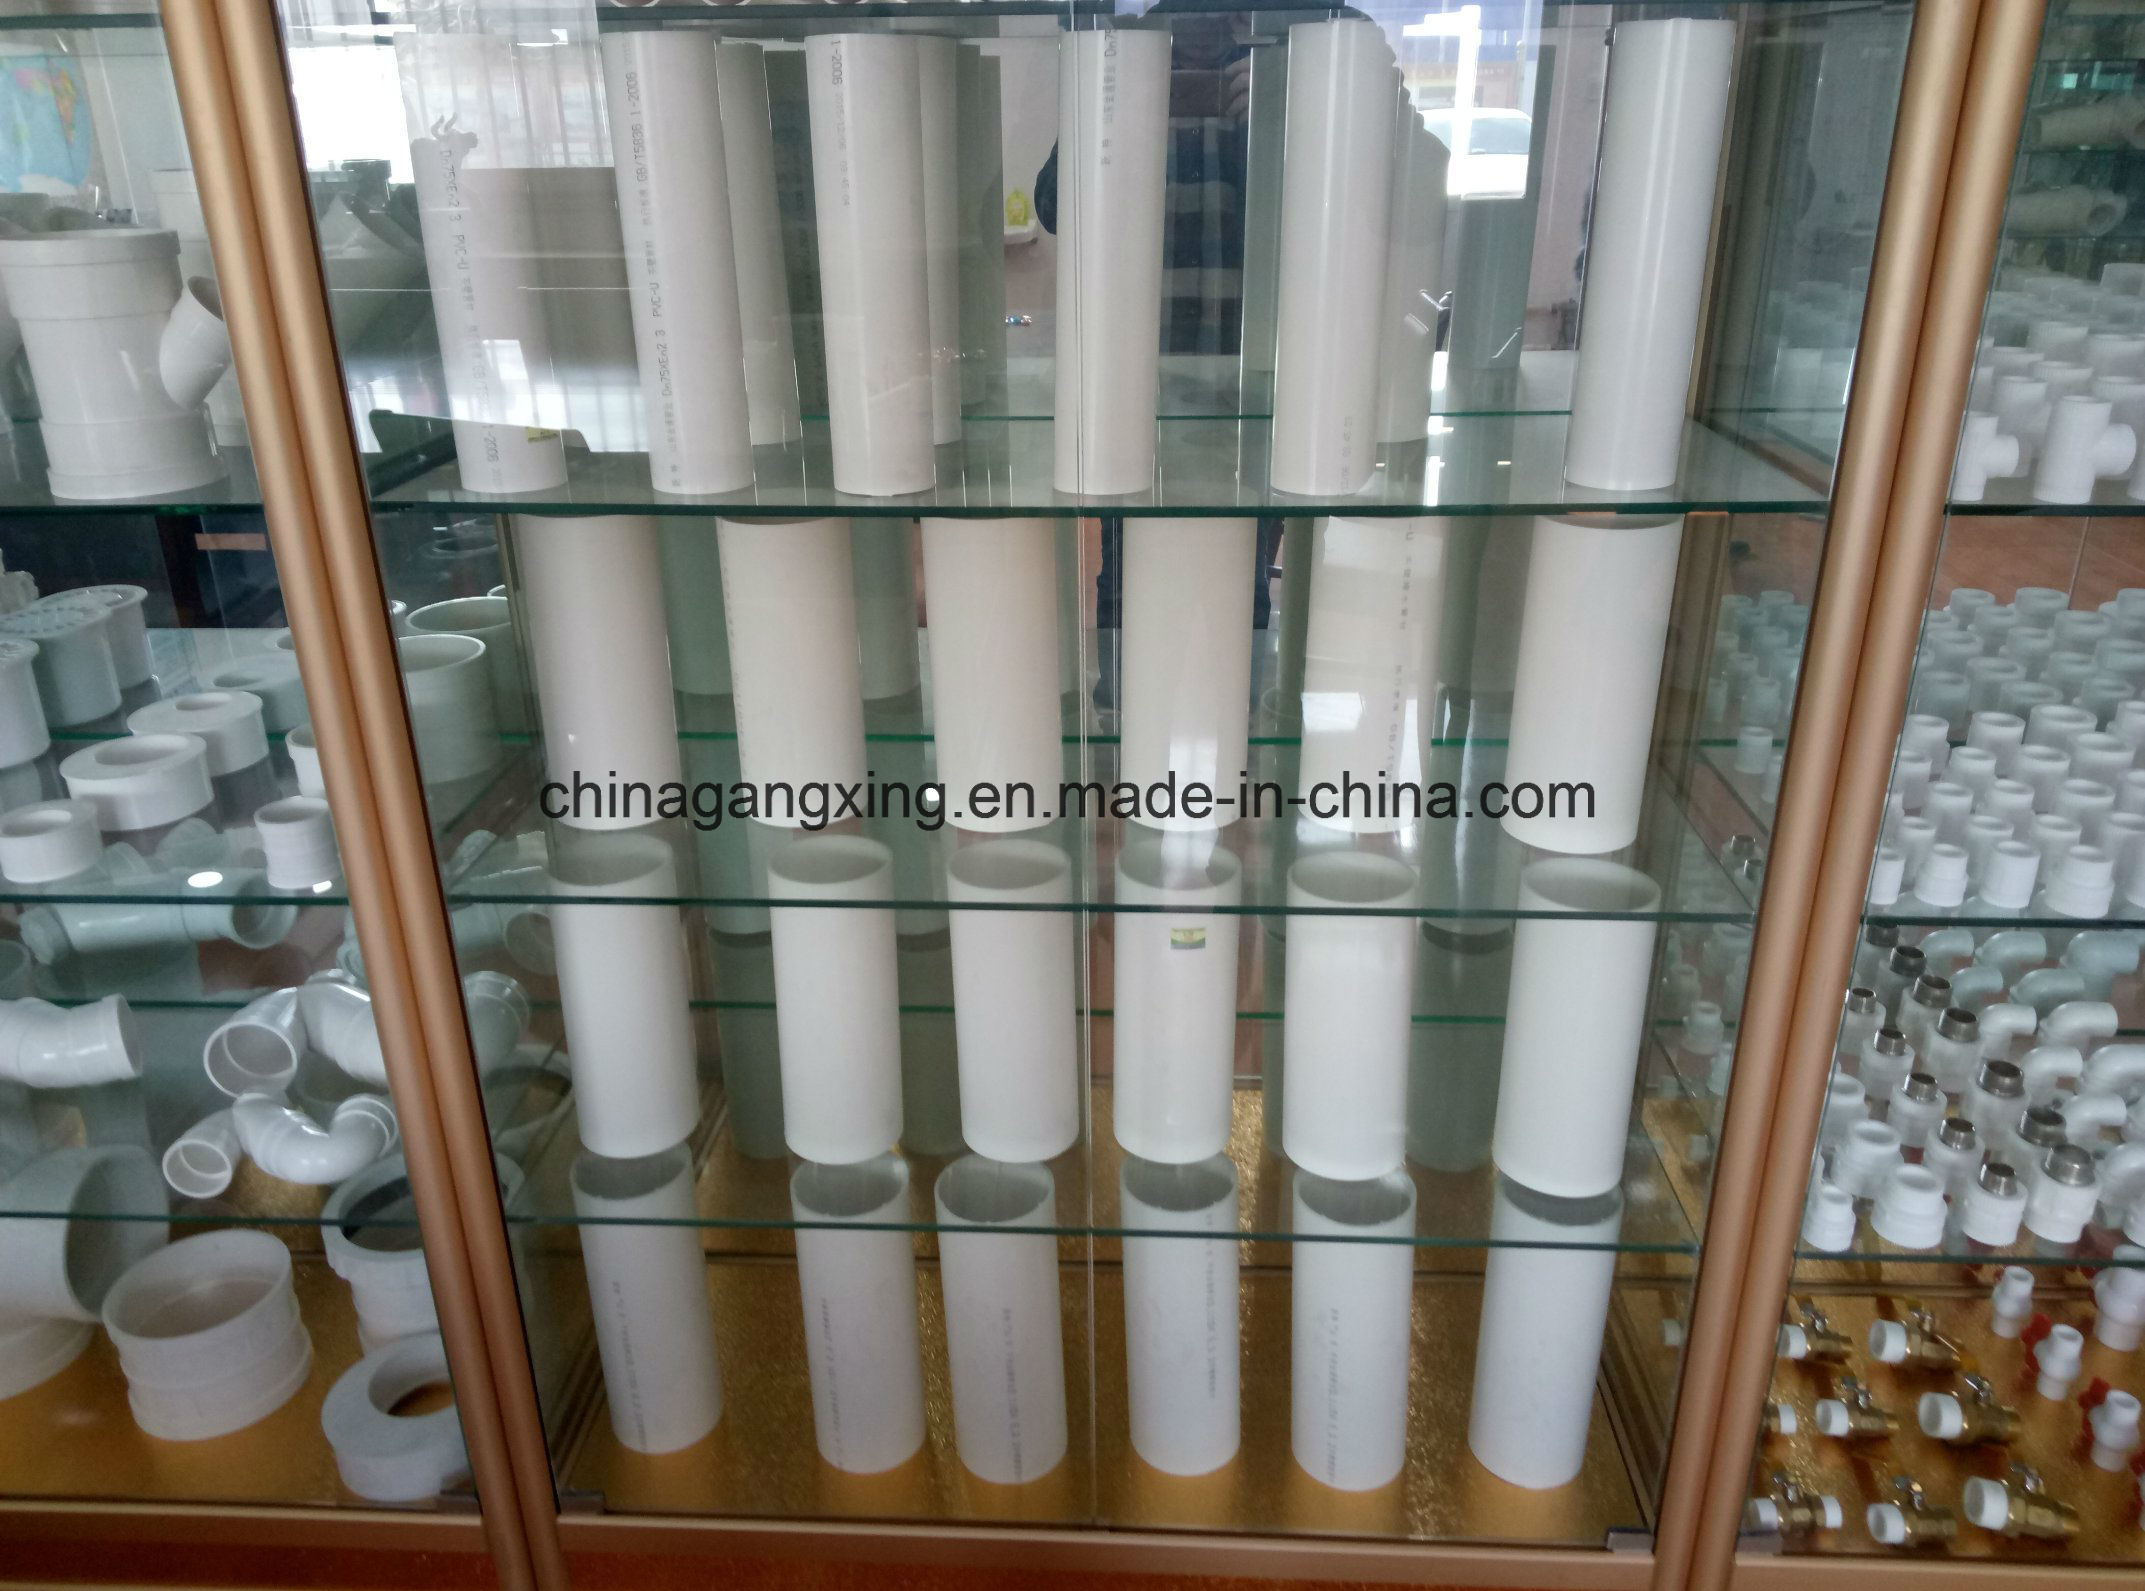 Hot and Cold Water Plastic PPR Pipe for Decoration